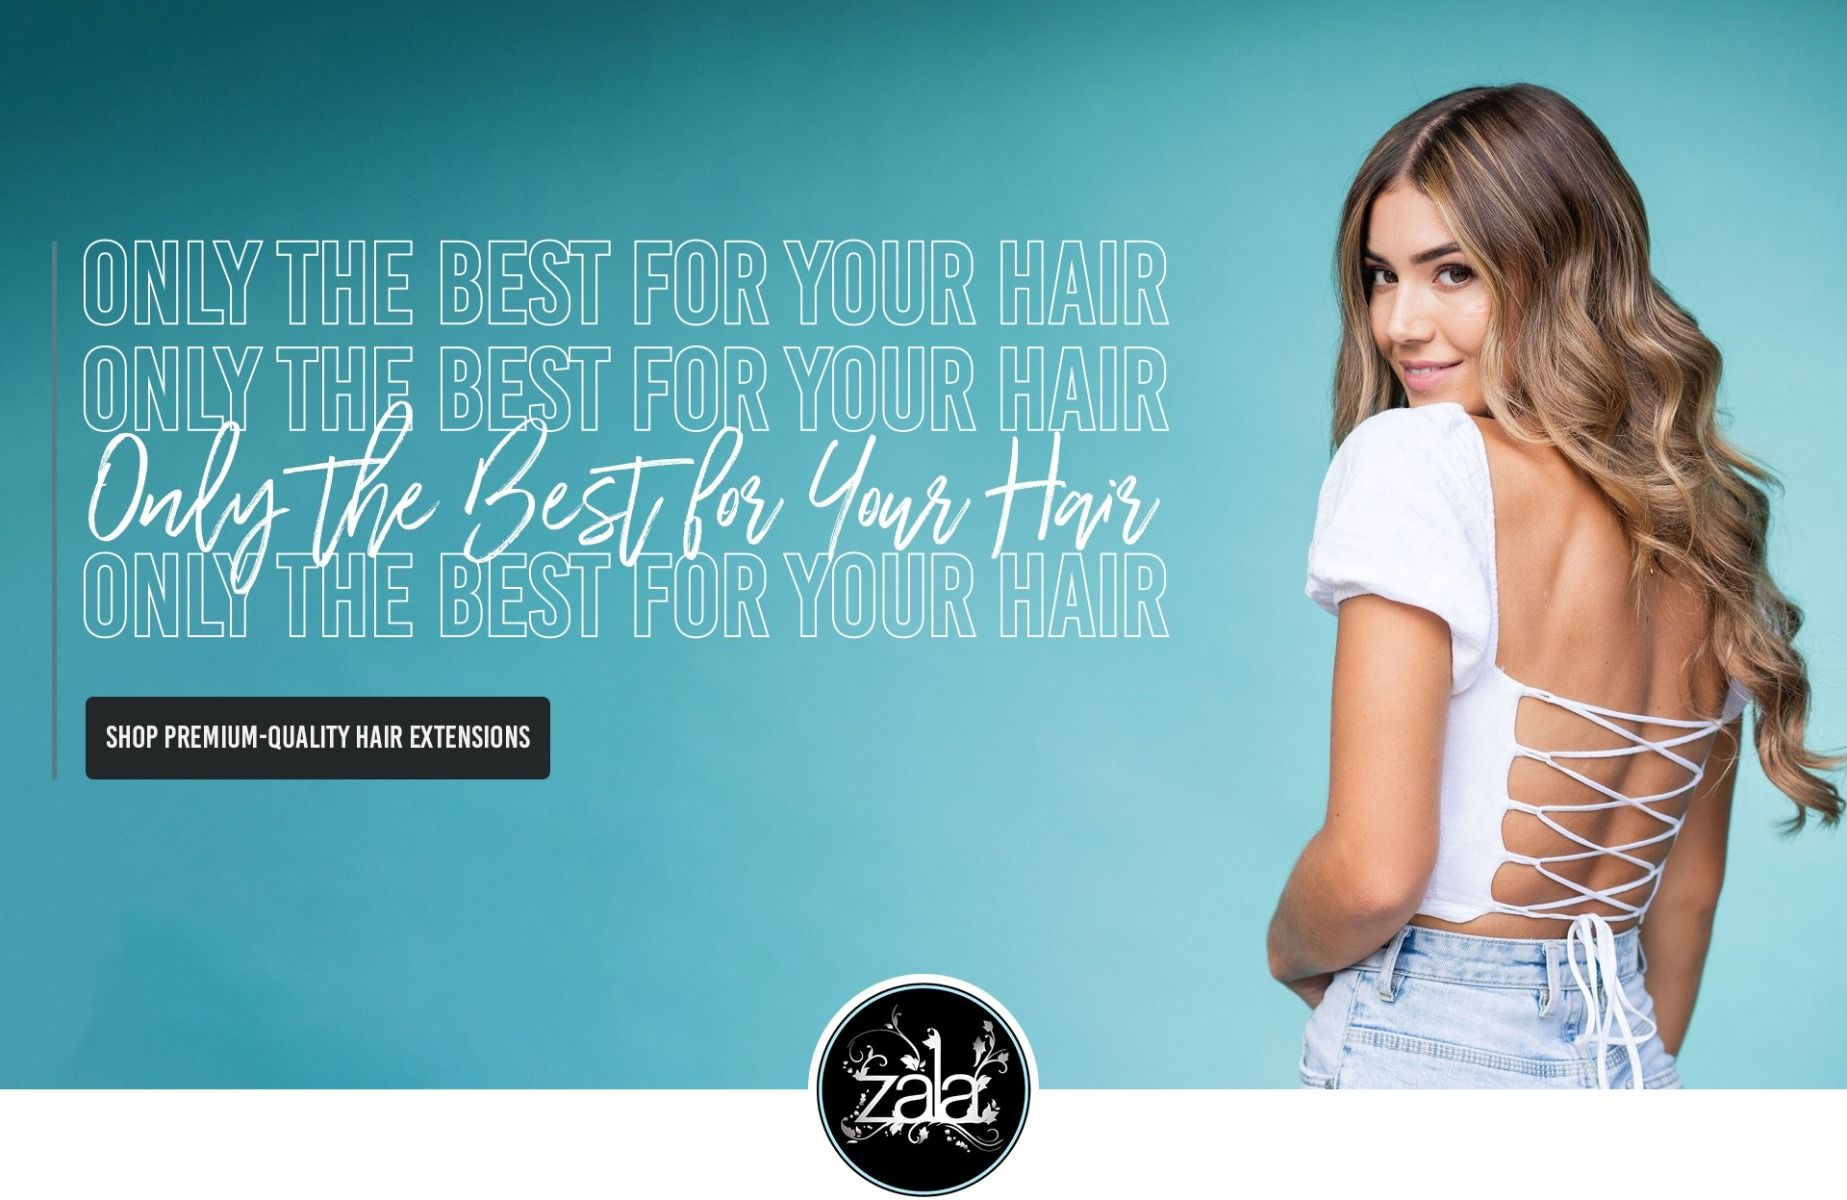 Premium quality hair - only the best hair